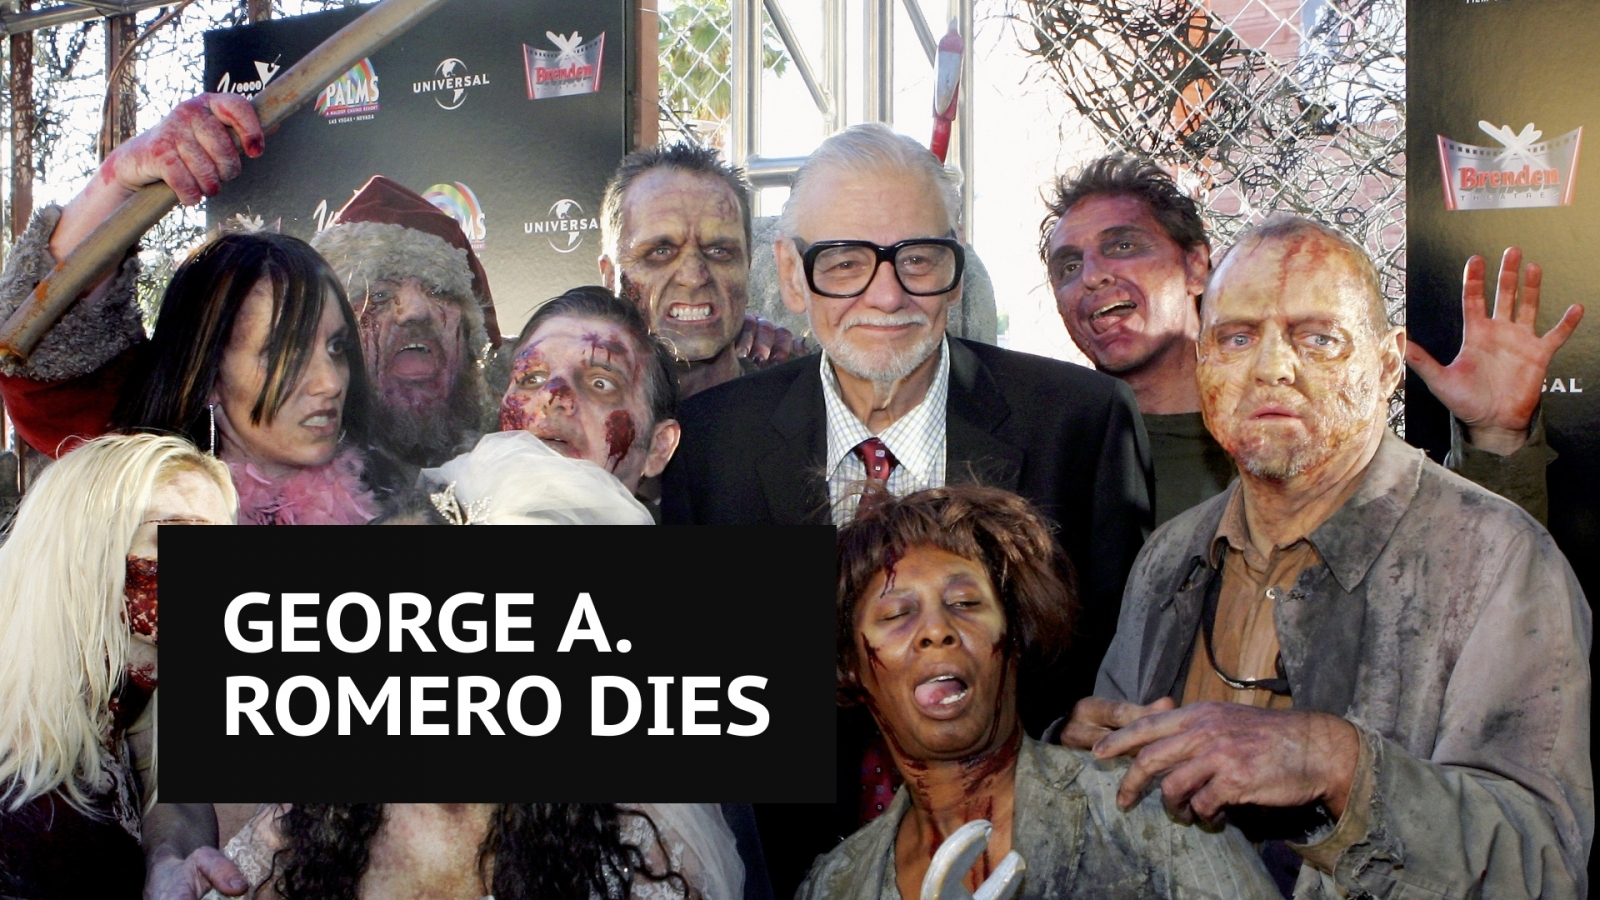 Legendary horror director George A. Romero dies